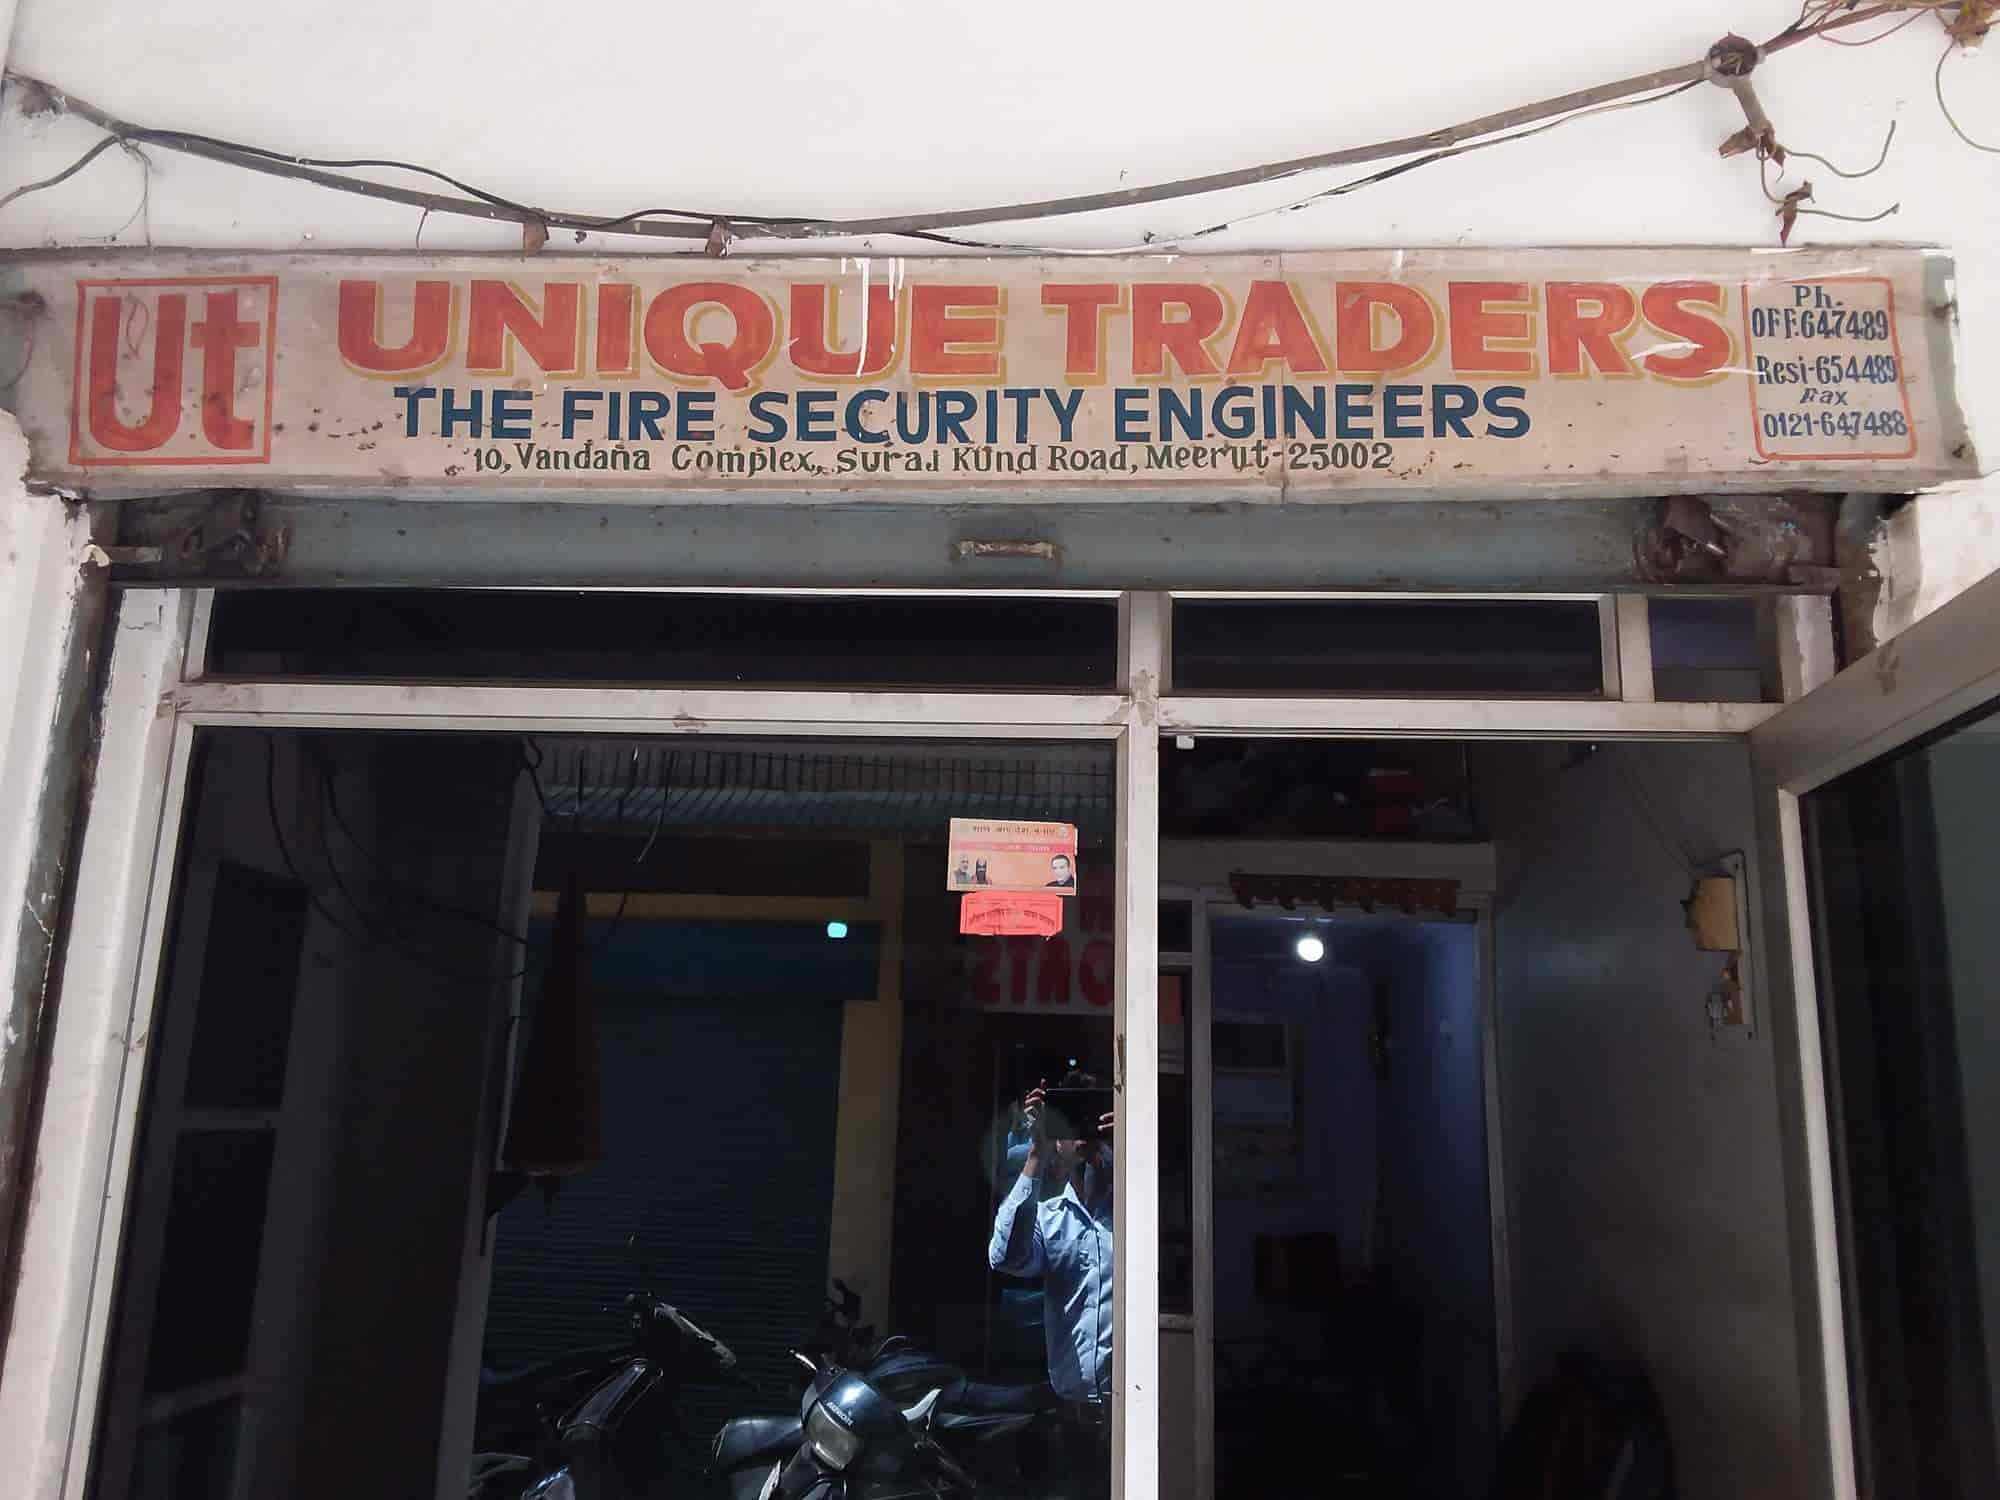 Unique Traders, Meerut City - Fire Fighting Equipment Supplier in